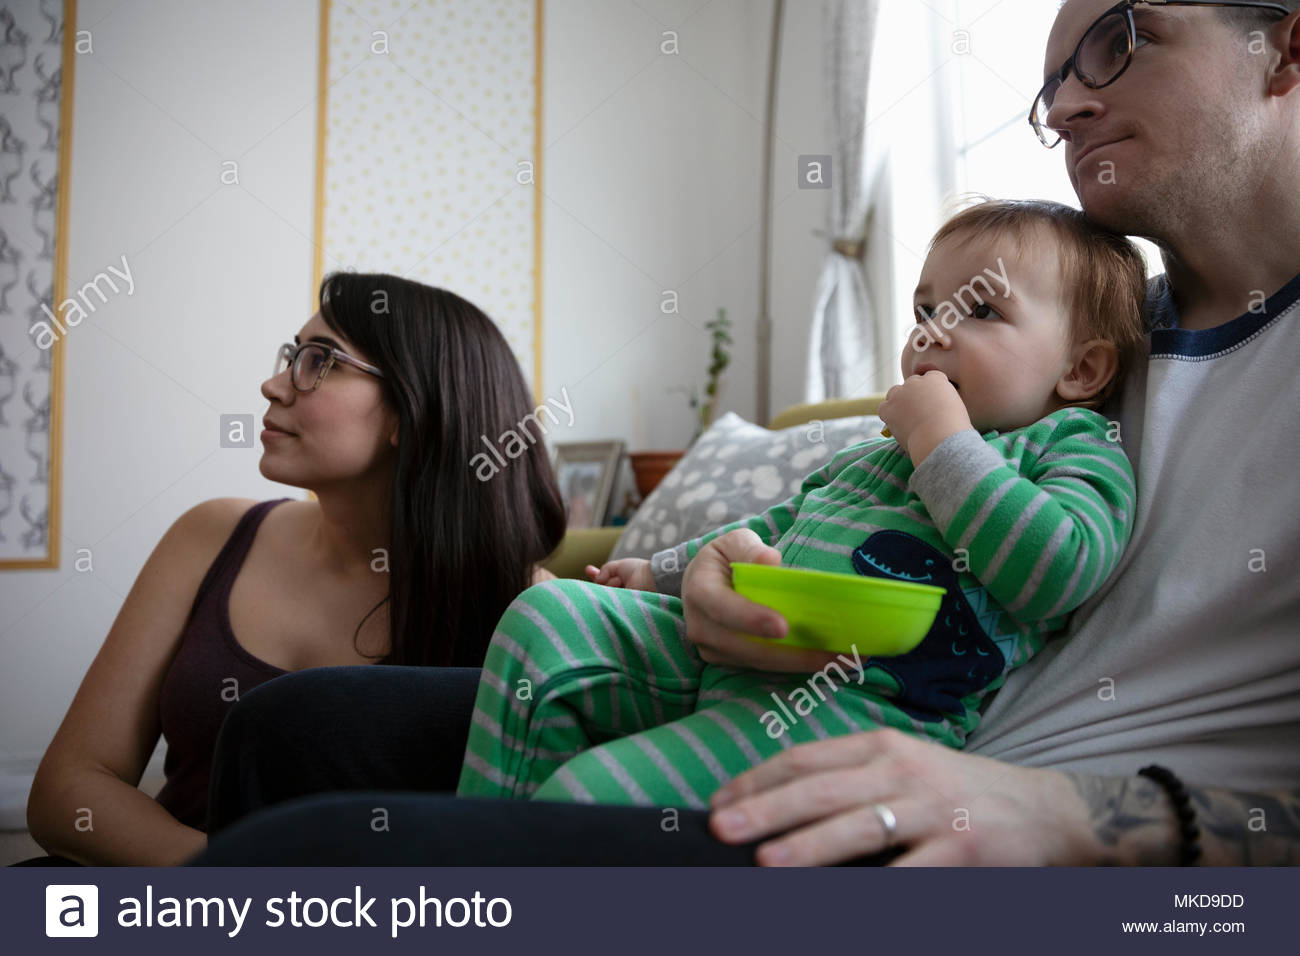 Young family eating, watching TV - Stock Image